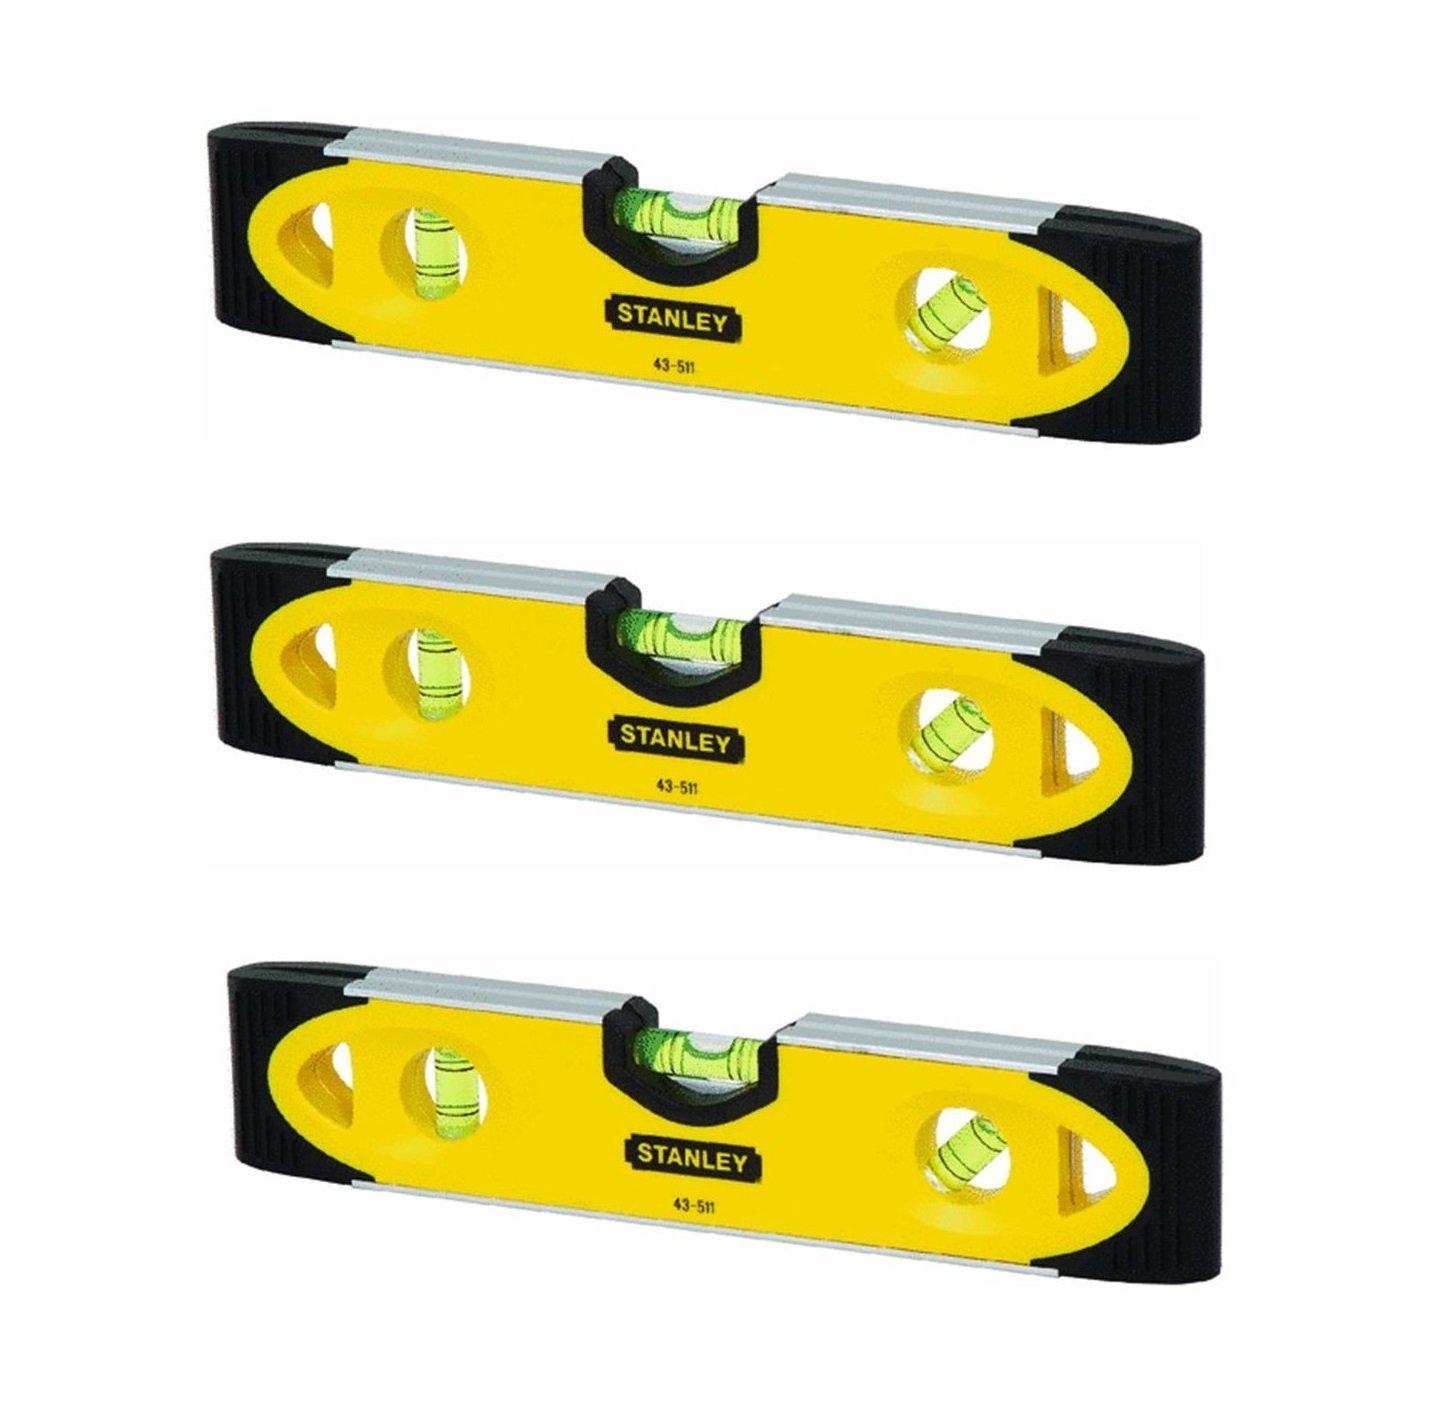 Stanley 43-511 Magnetic Shock Resistant Torpedo Level - - Amazon.com for Spirit Level Parts  76uhy